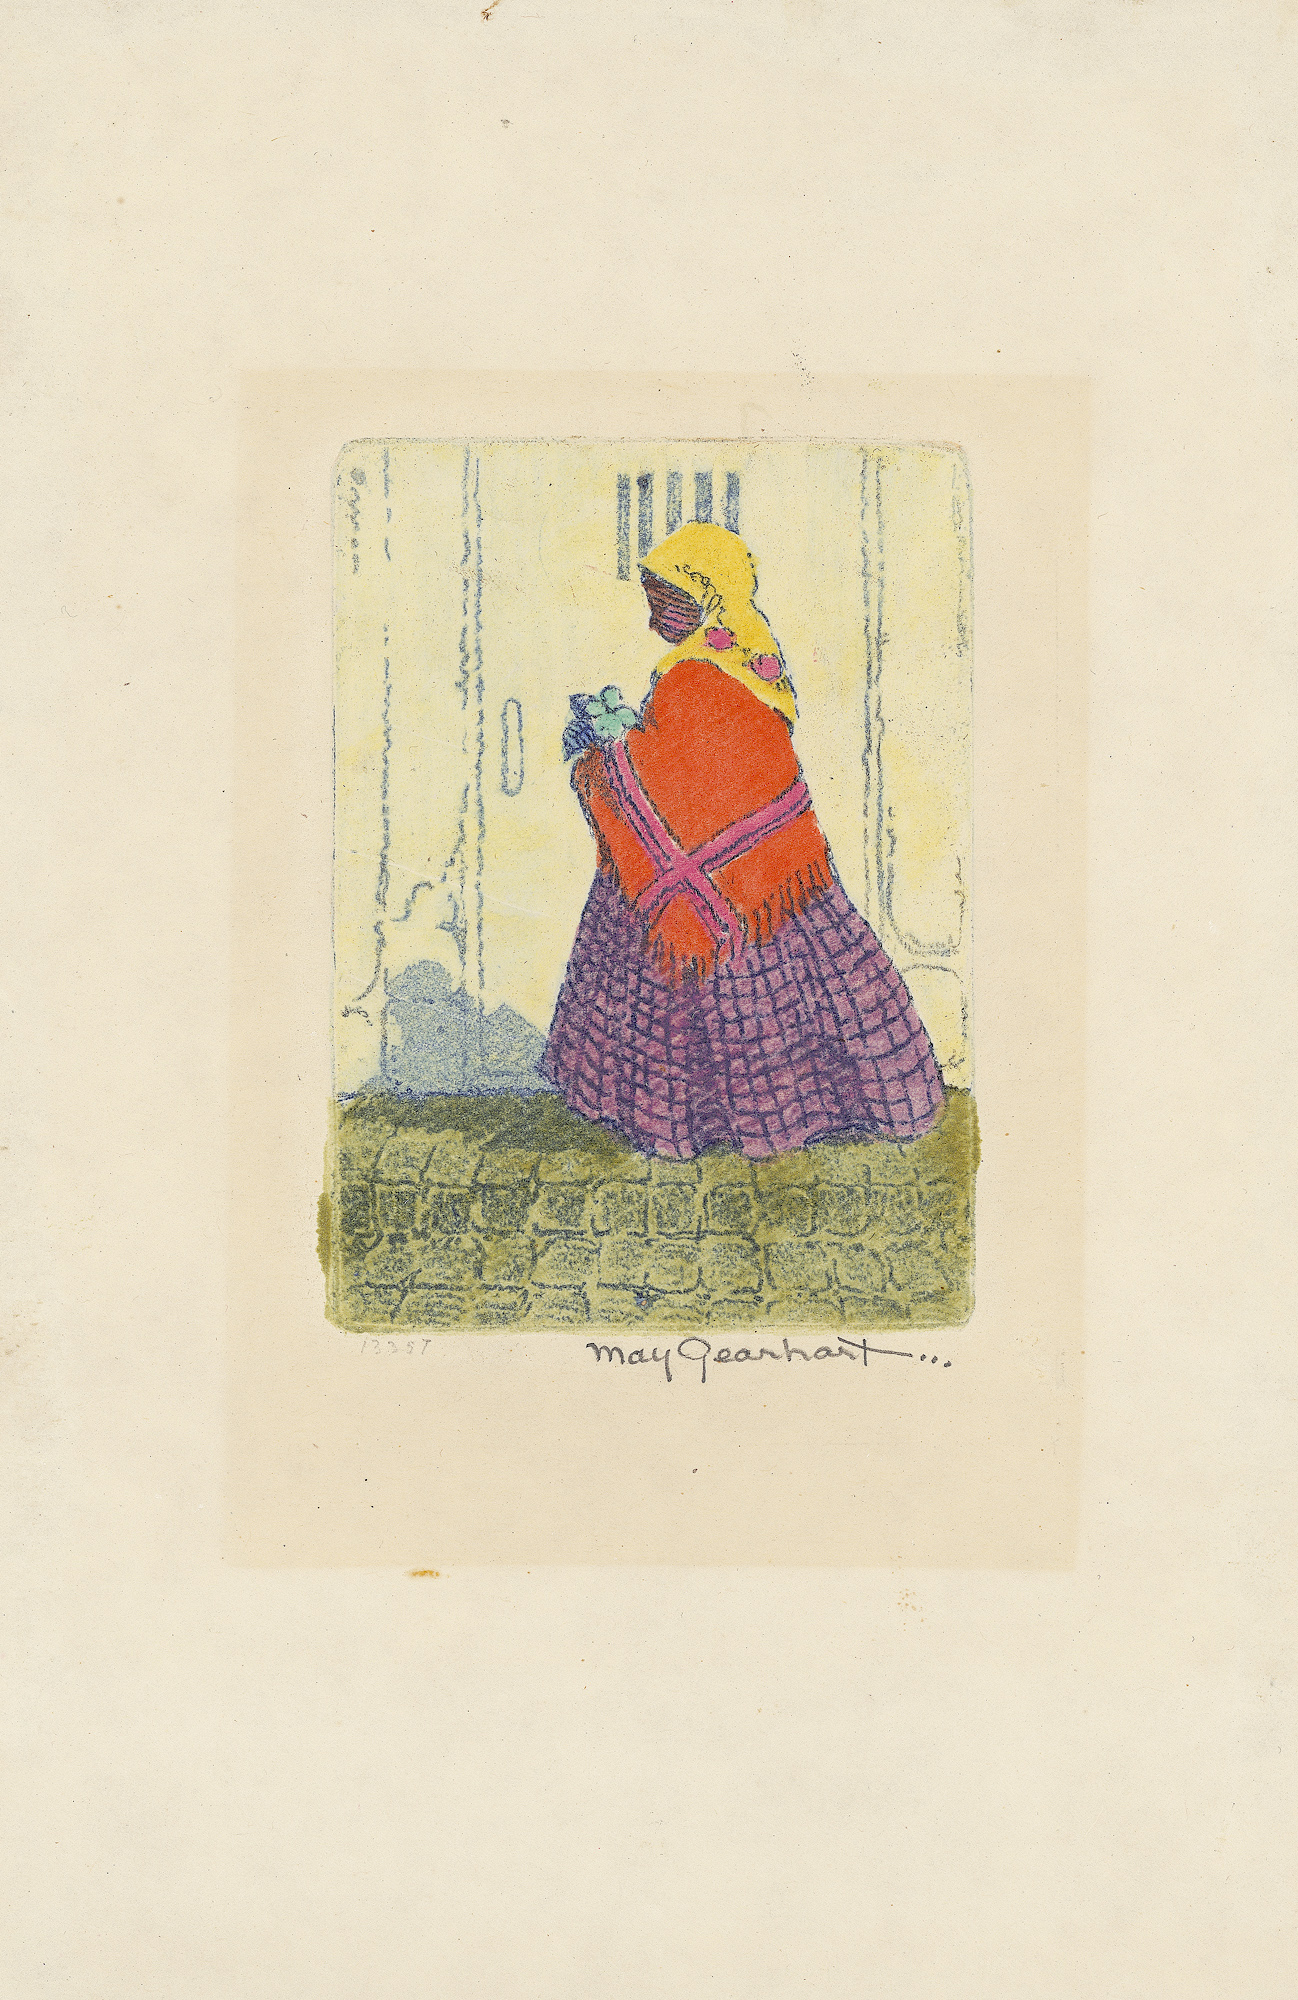 George washington carver crafts - Frances And May Joined The Printmakers Society Of California Later Known As The California Print Makers Whose Members Met In The Gearhart Home Studio